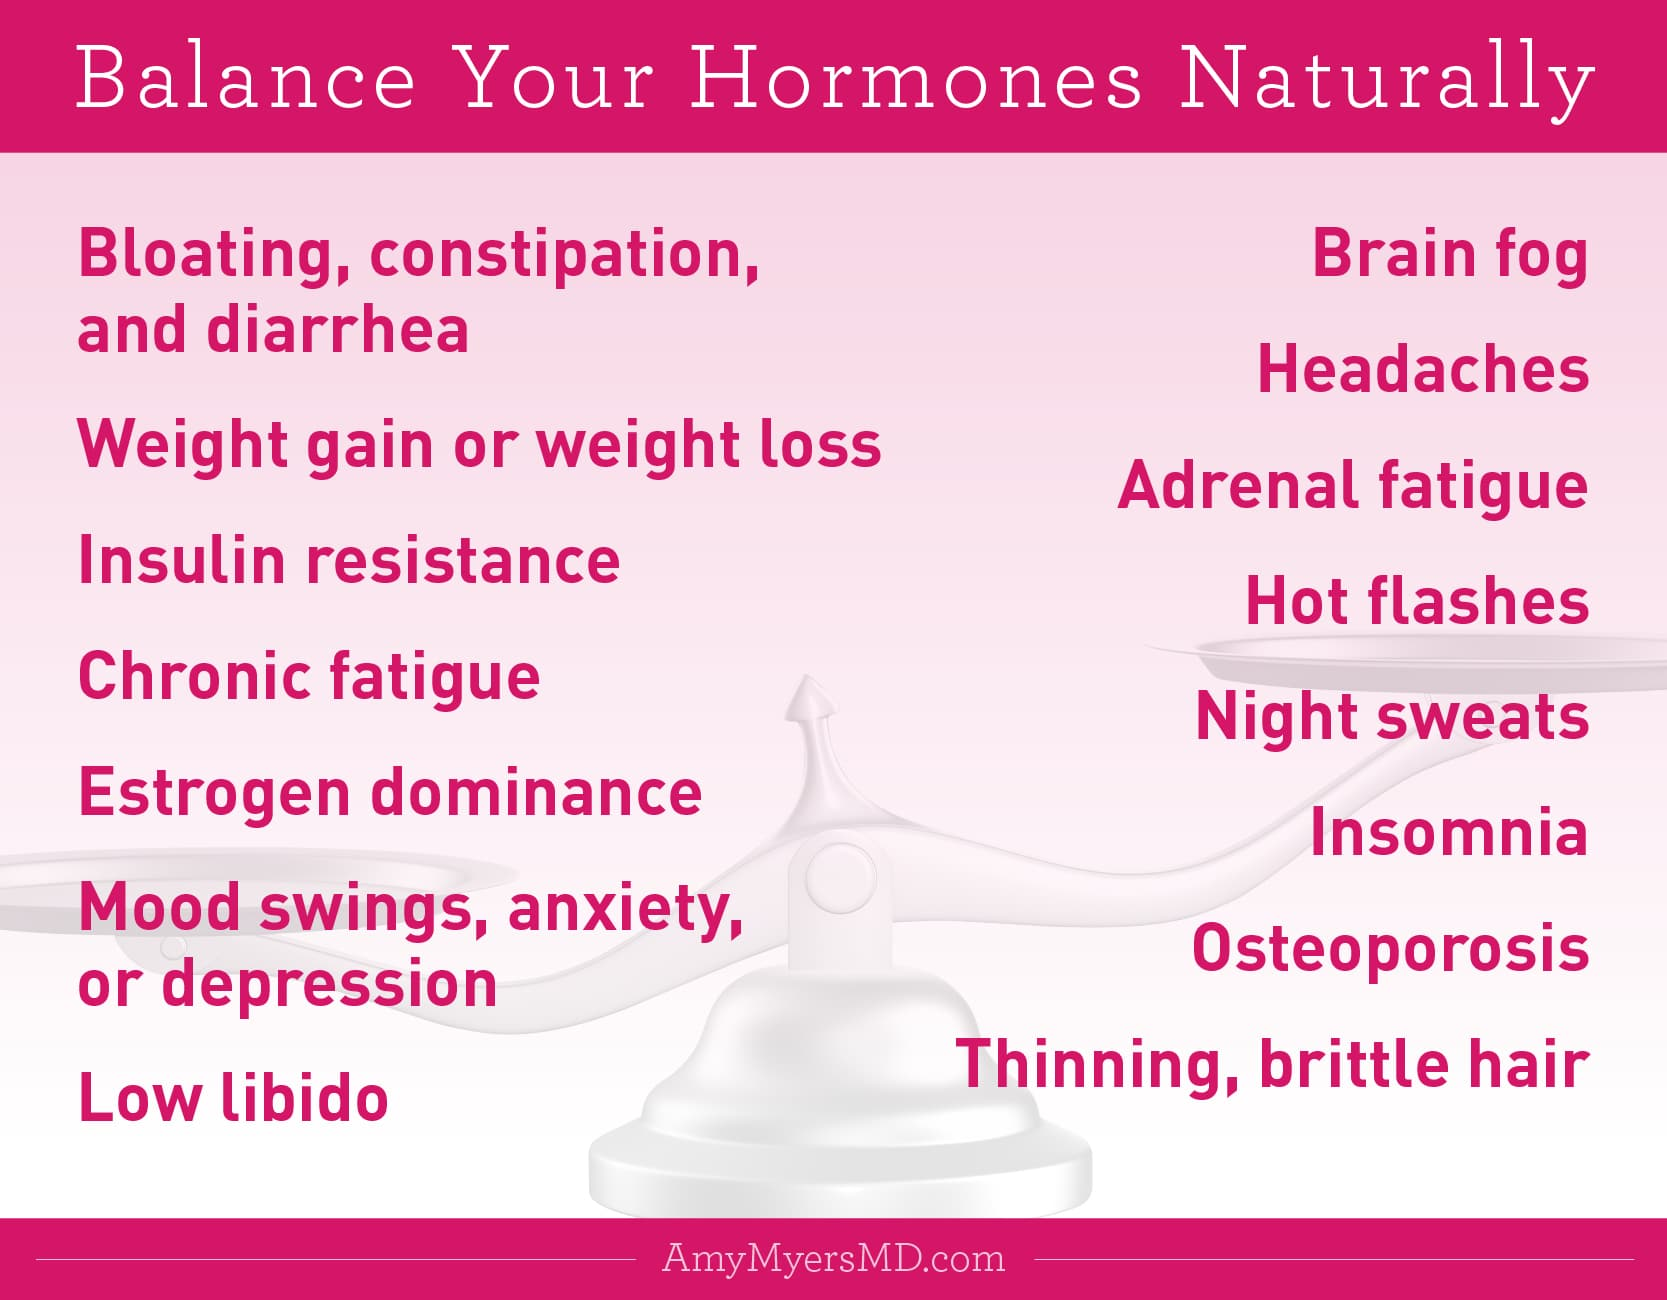 Symptoms of Hormone Imbalance - Infographic - Amy Myers MD